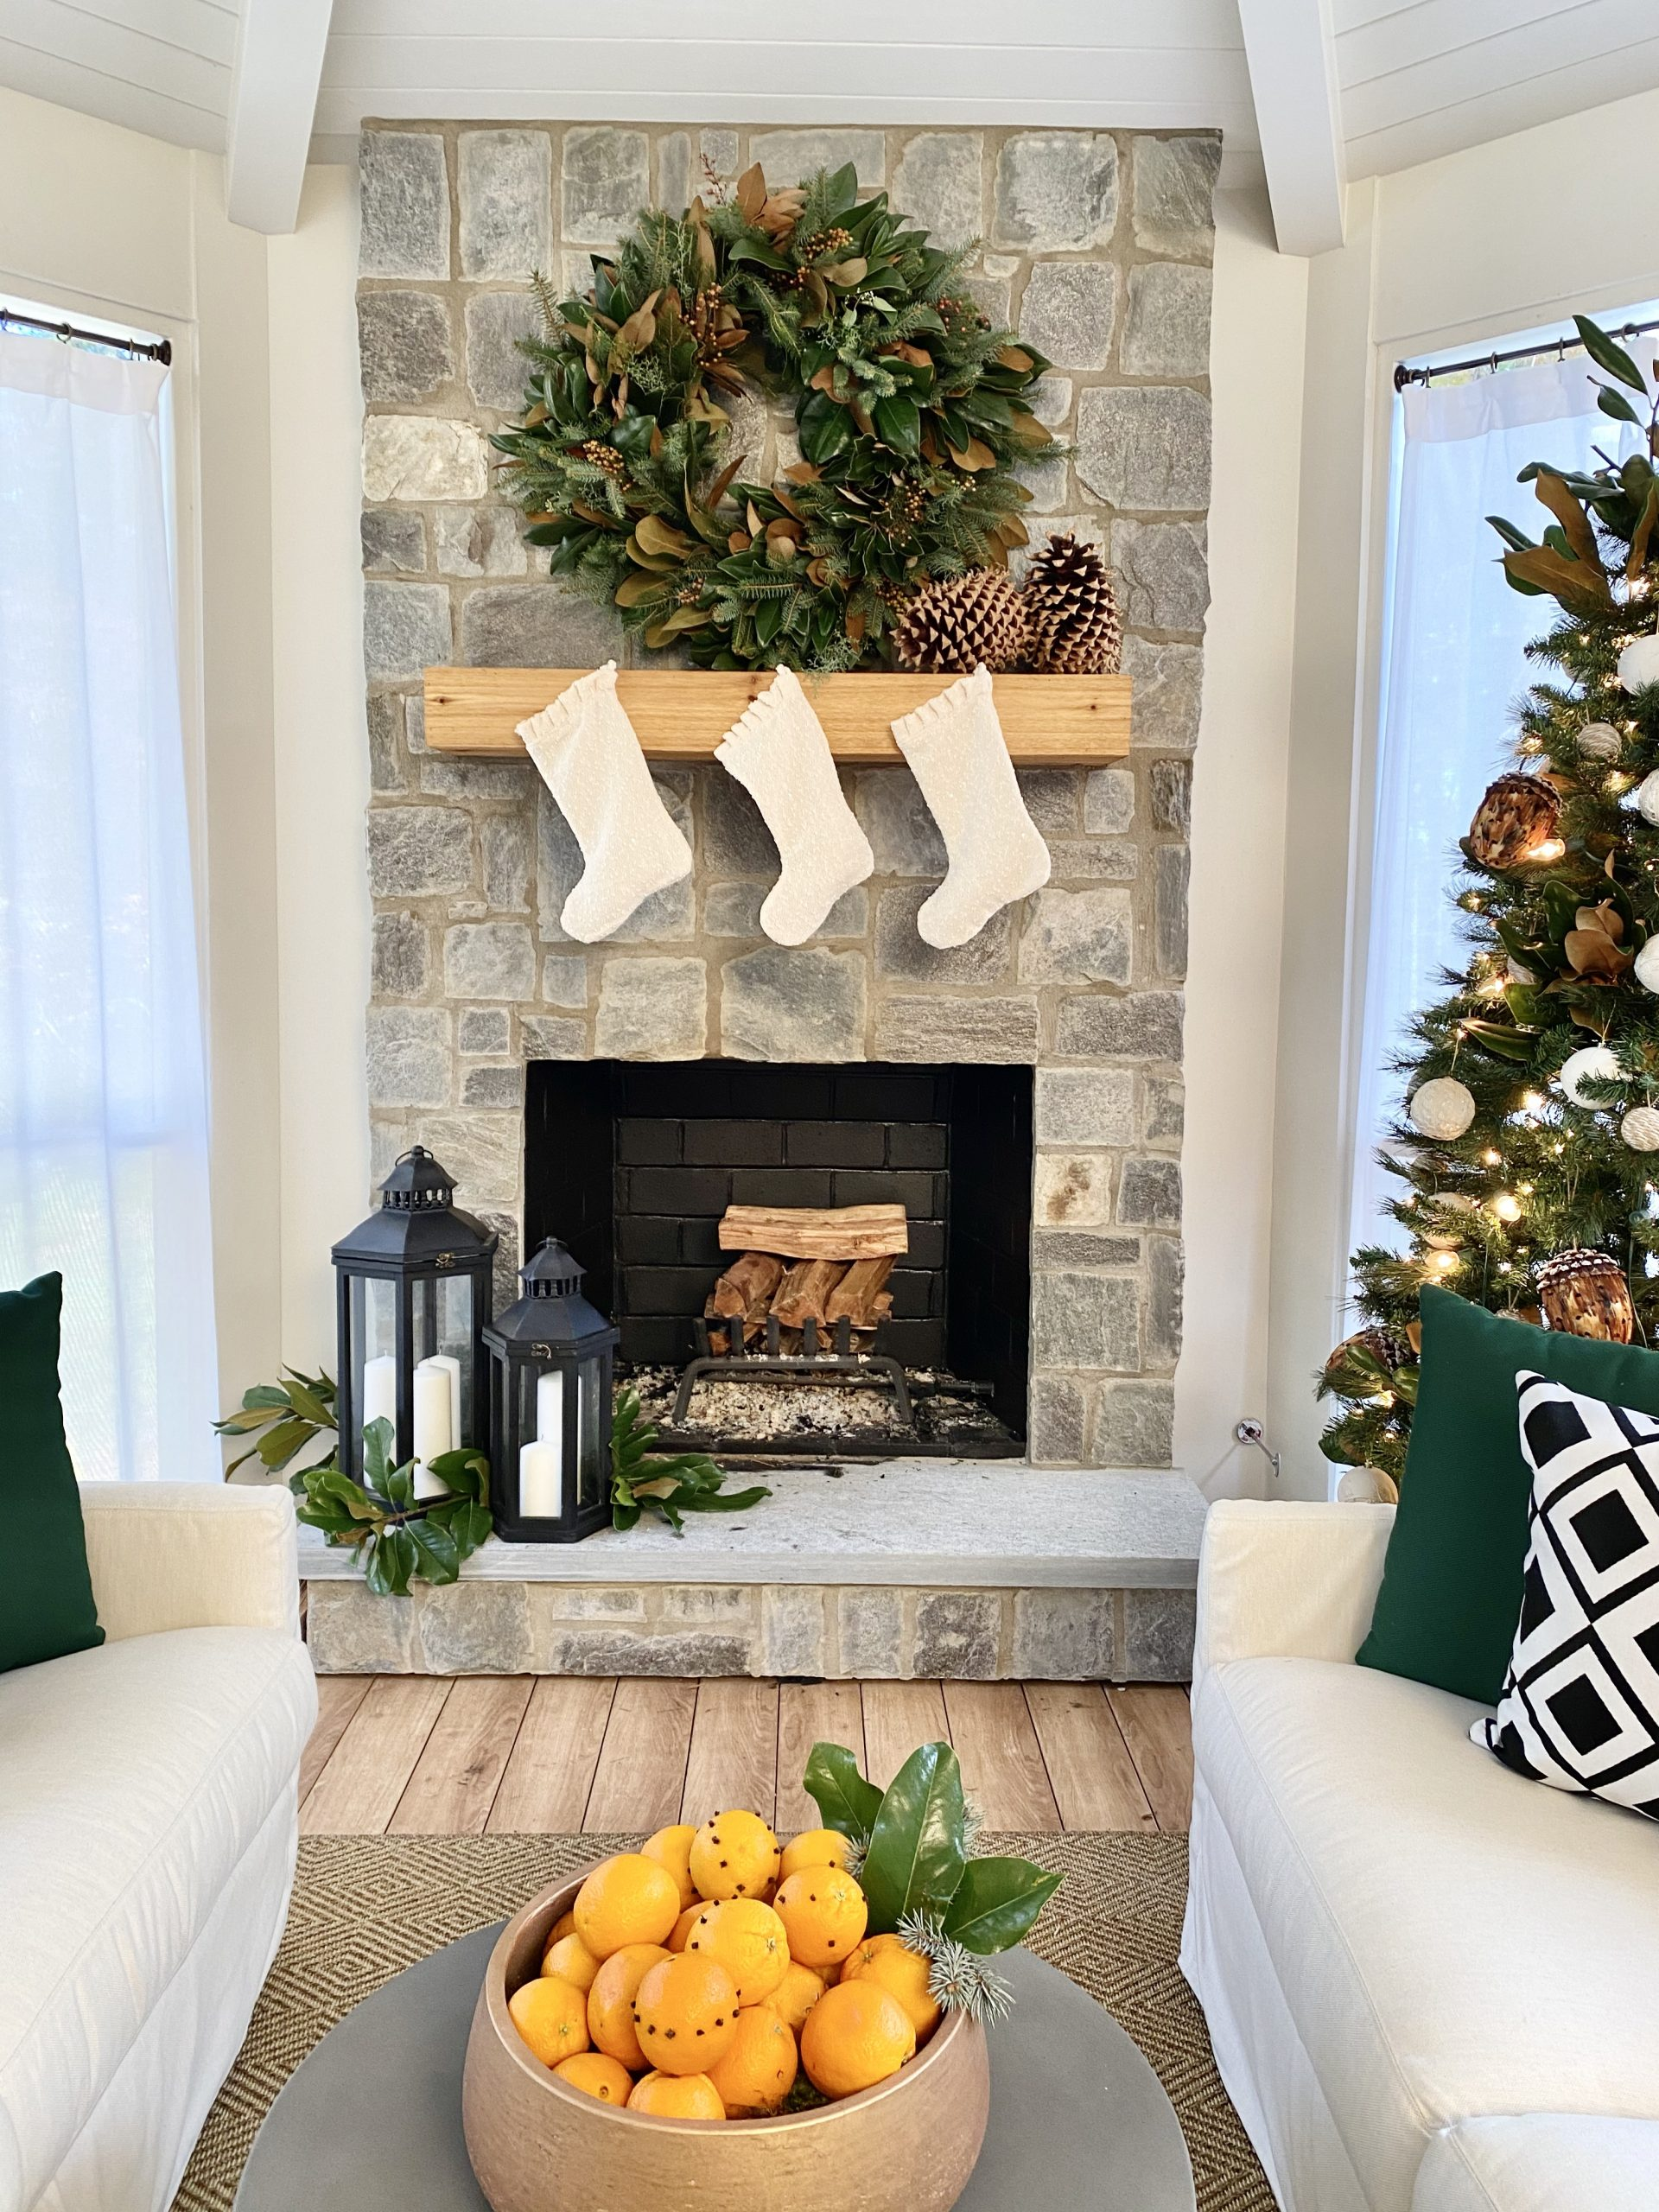 Sunbrealla-holiday-pillows-styling